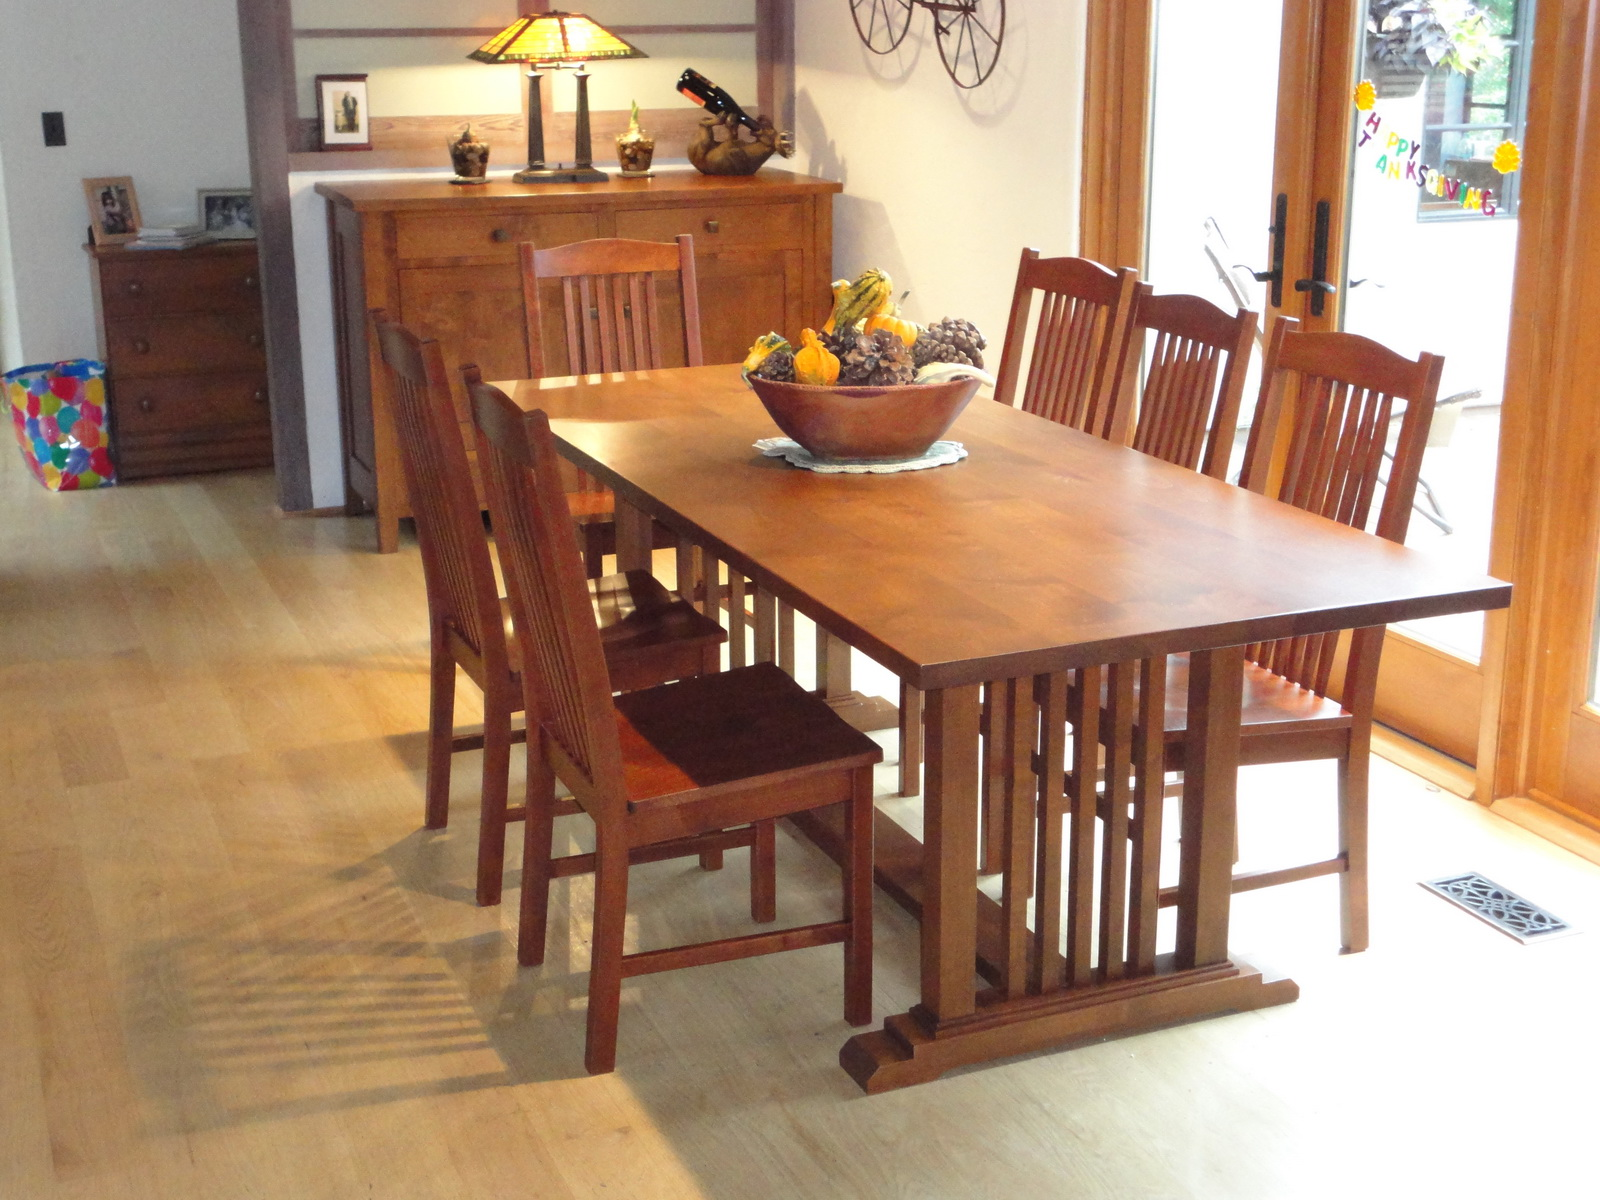 Attractive Mission Style Table And Chairs